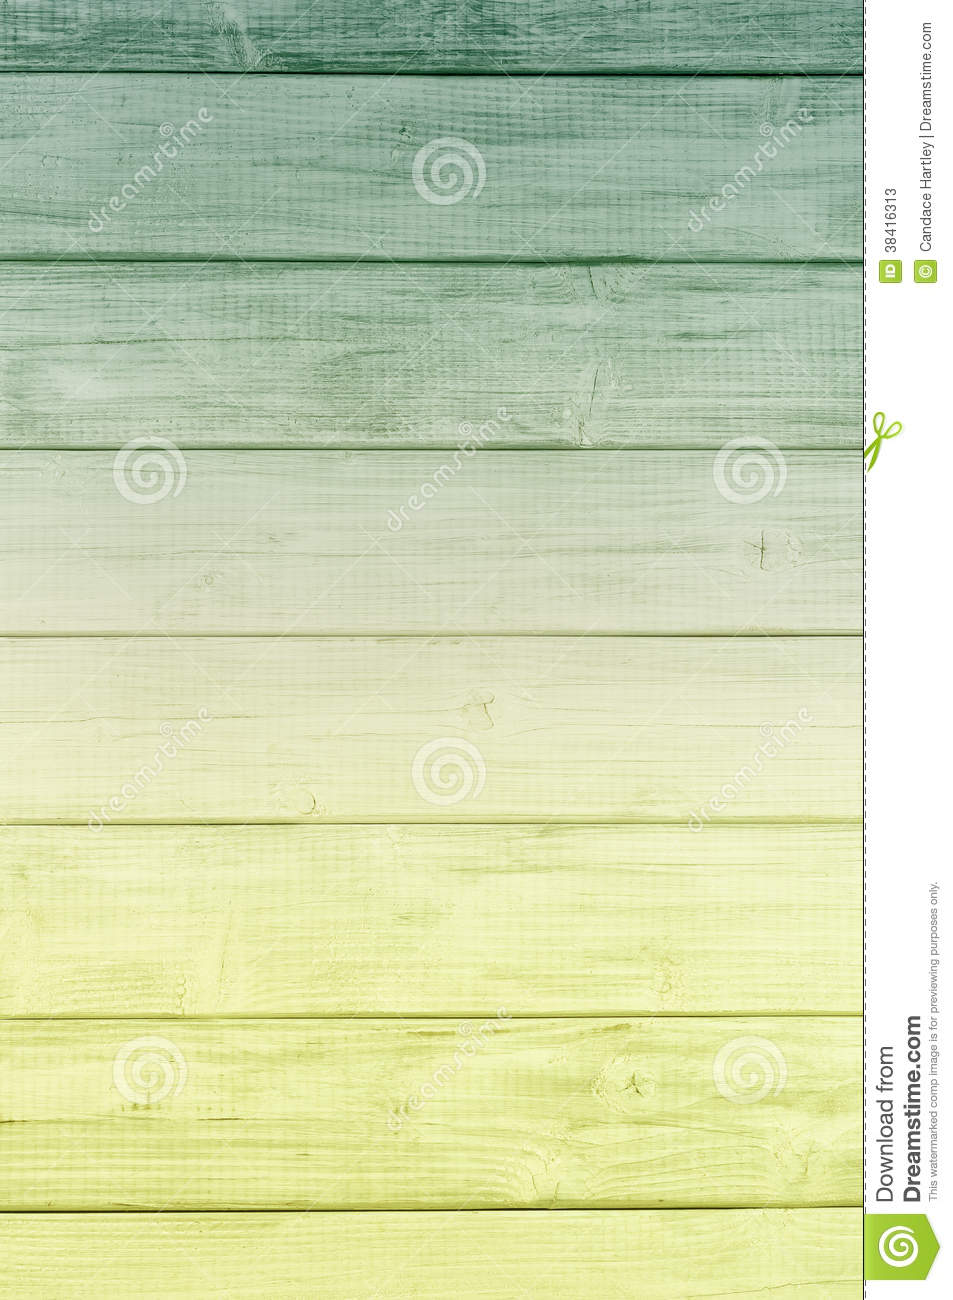 Bright Color Spectrum Dark Green To Yellow Rustic Painted Board Background Room Or Space For Copy Text Words